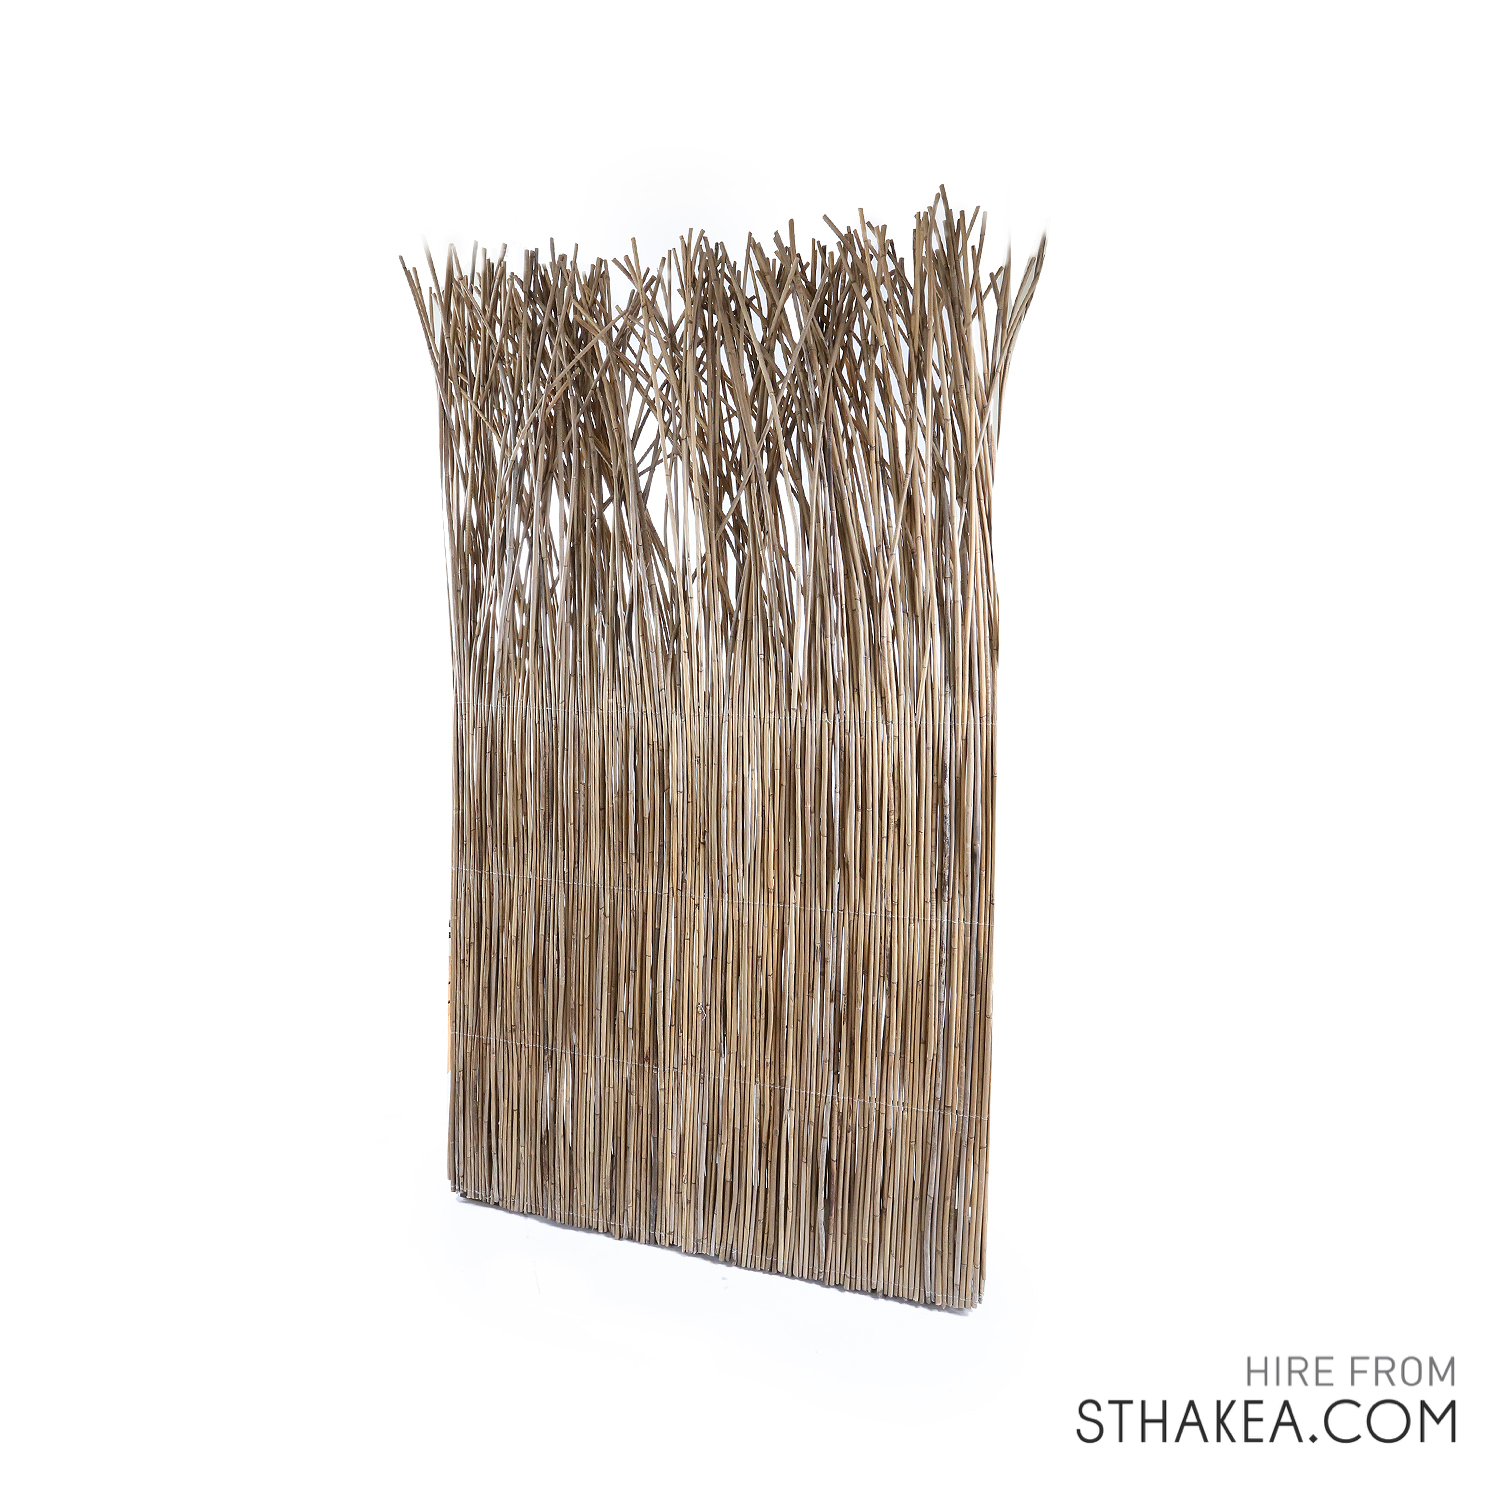 St Hakea Melbourne Event Hire Brush Screen Divider Wall.jpg